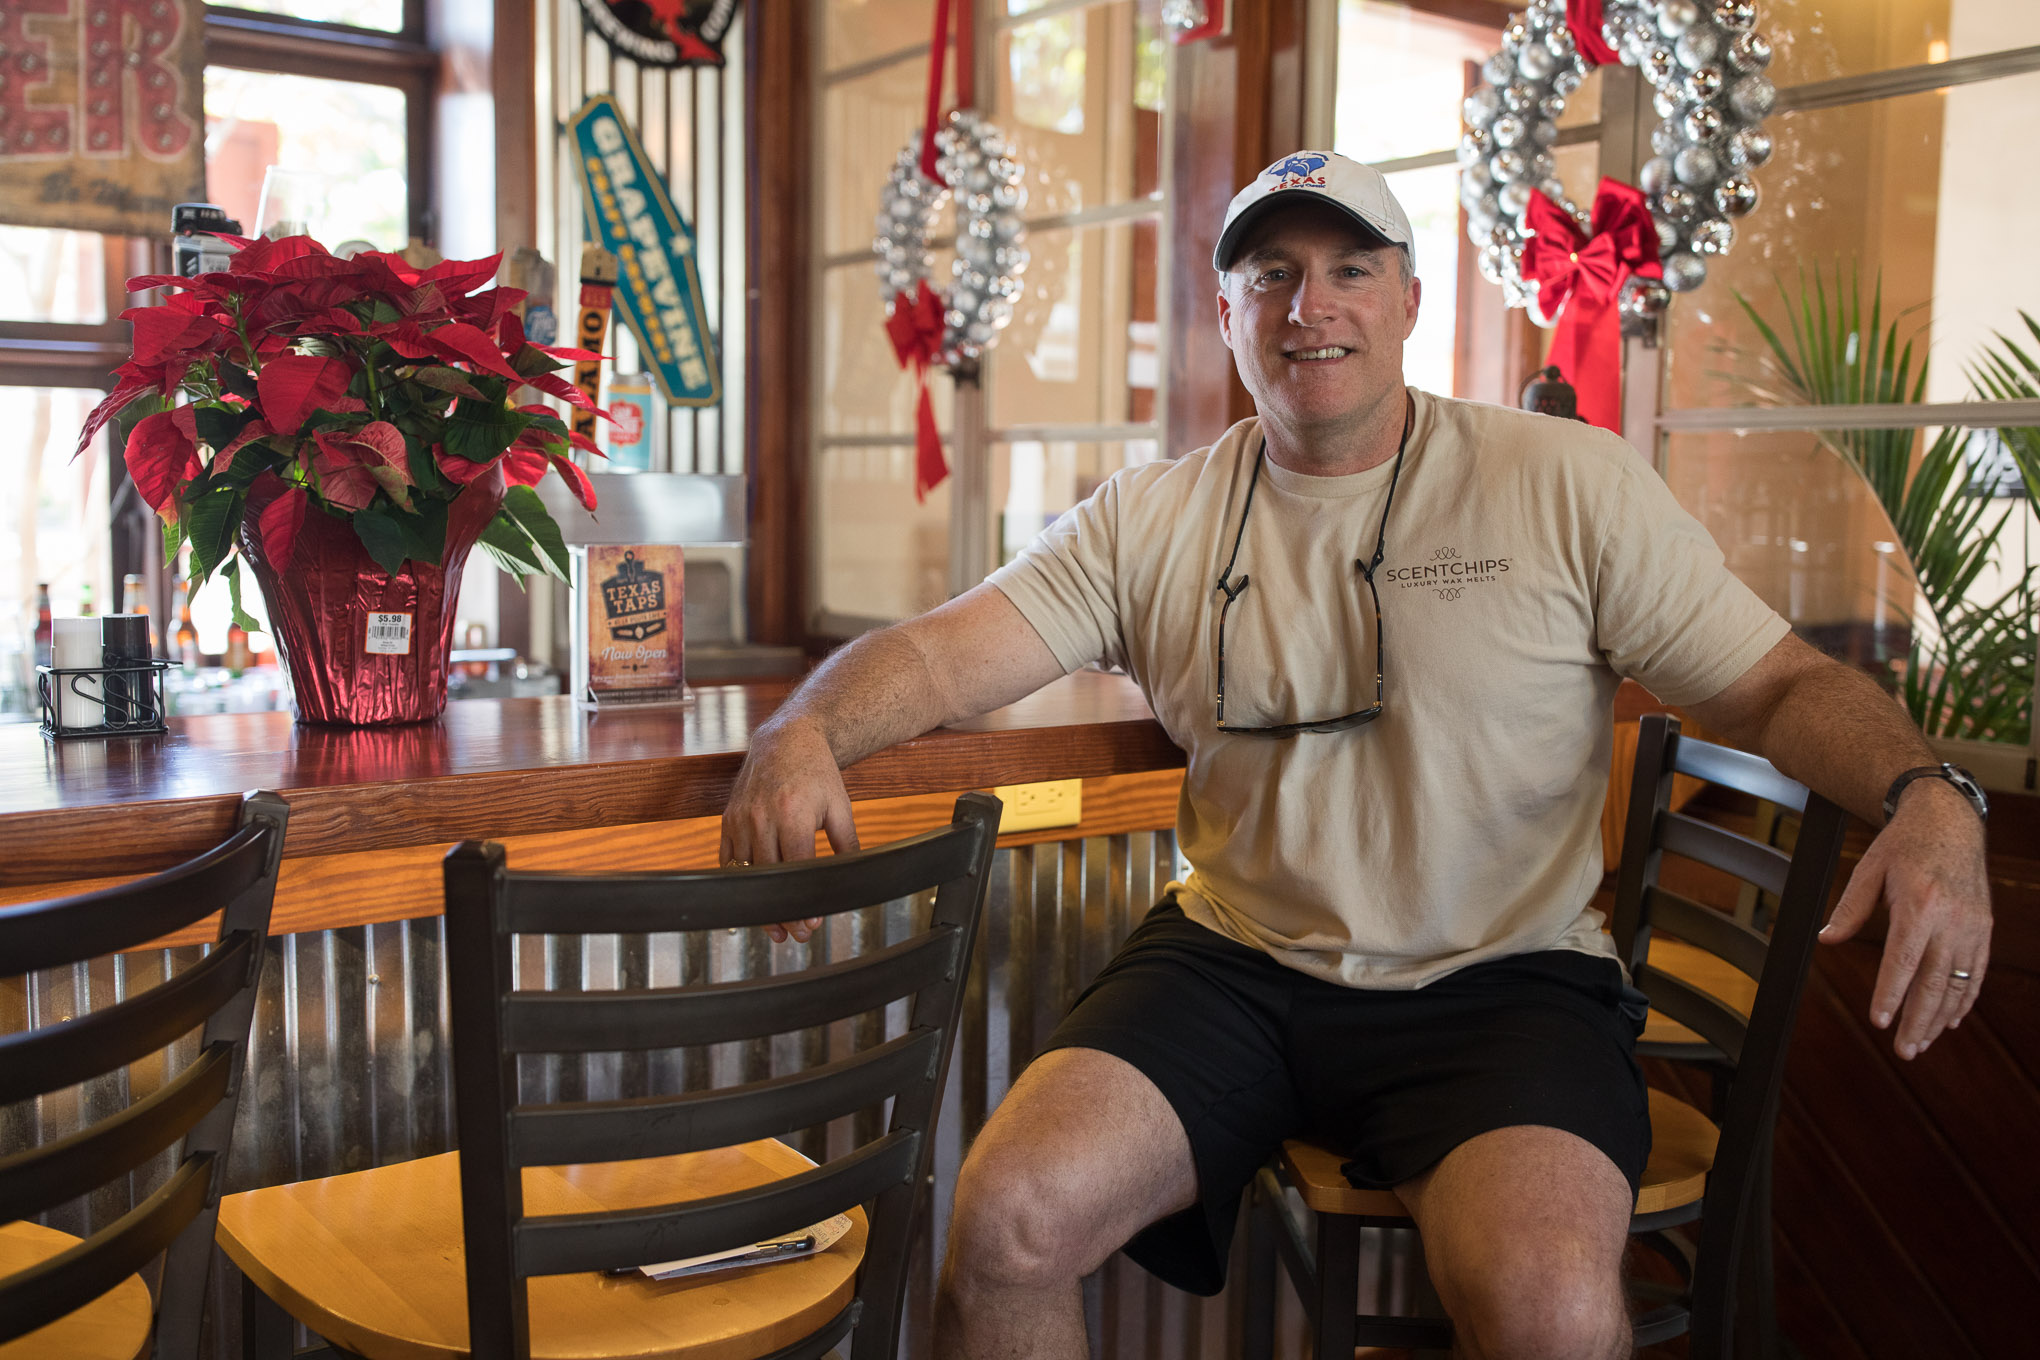 Barry Clark is a tenant and owner of two businesses at La Villita.